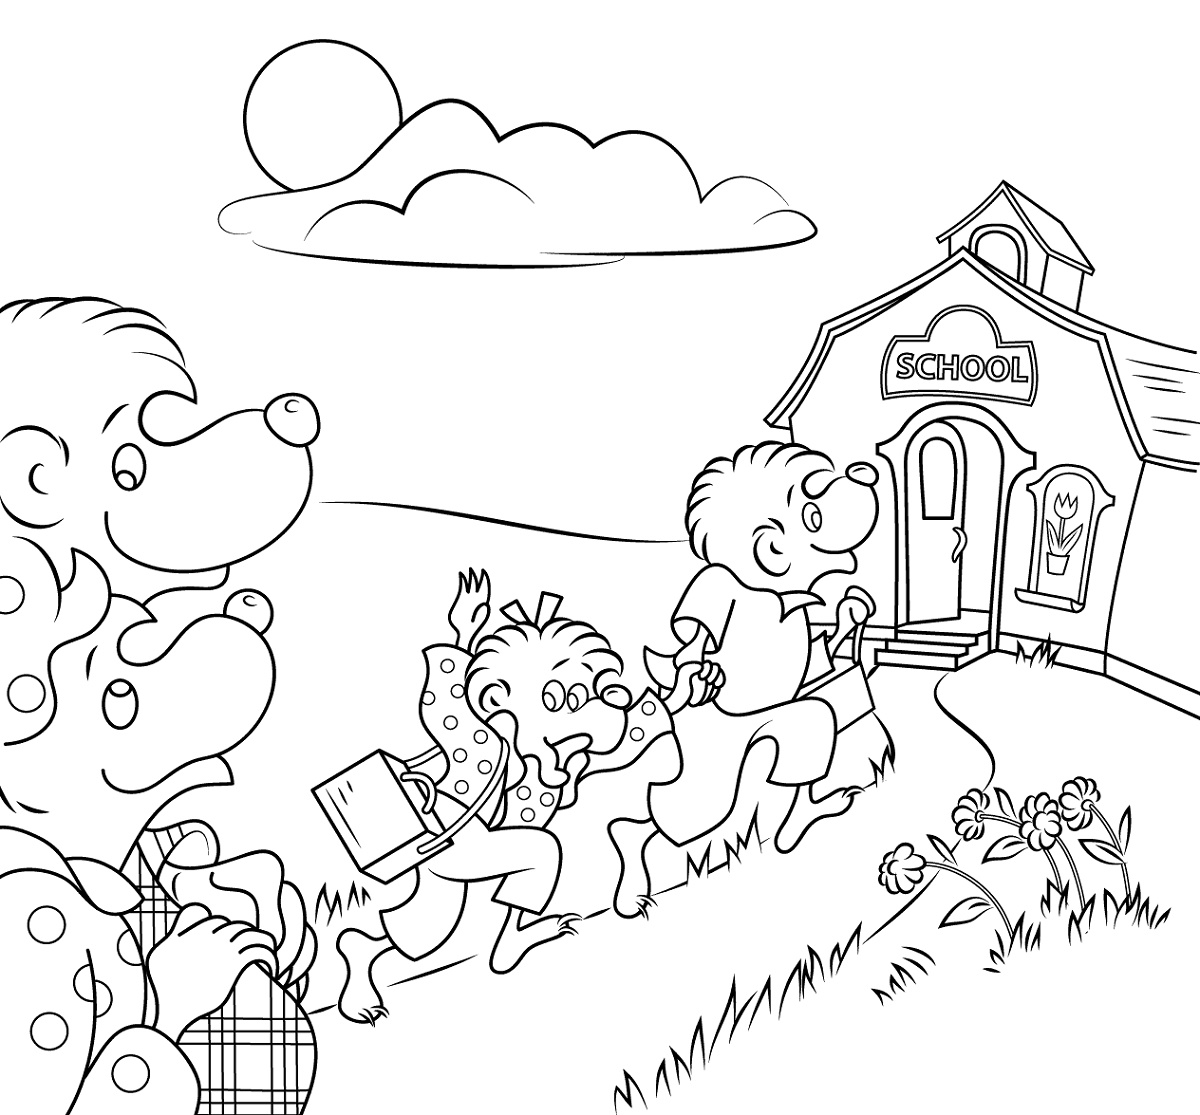 Berenstain Bears Coloring Pages Go to SchoolBerenstain Bears Coloring Pages Go to School